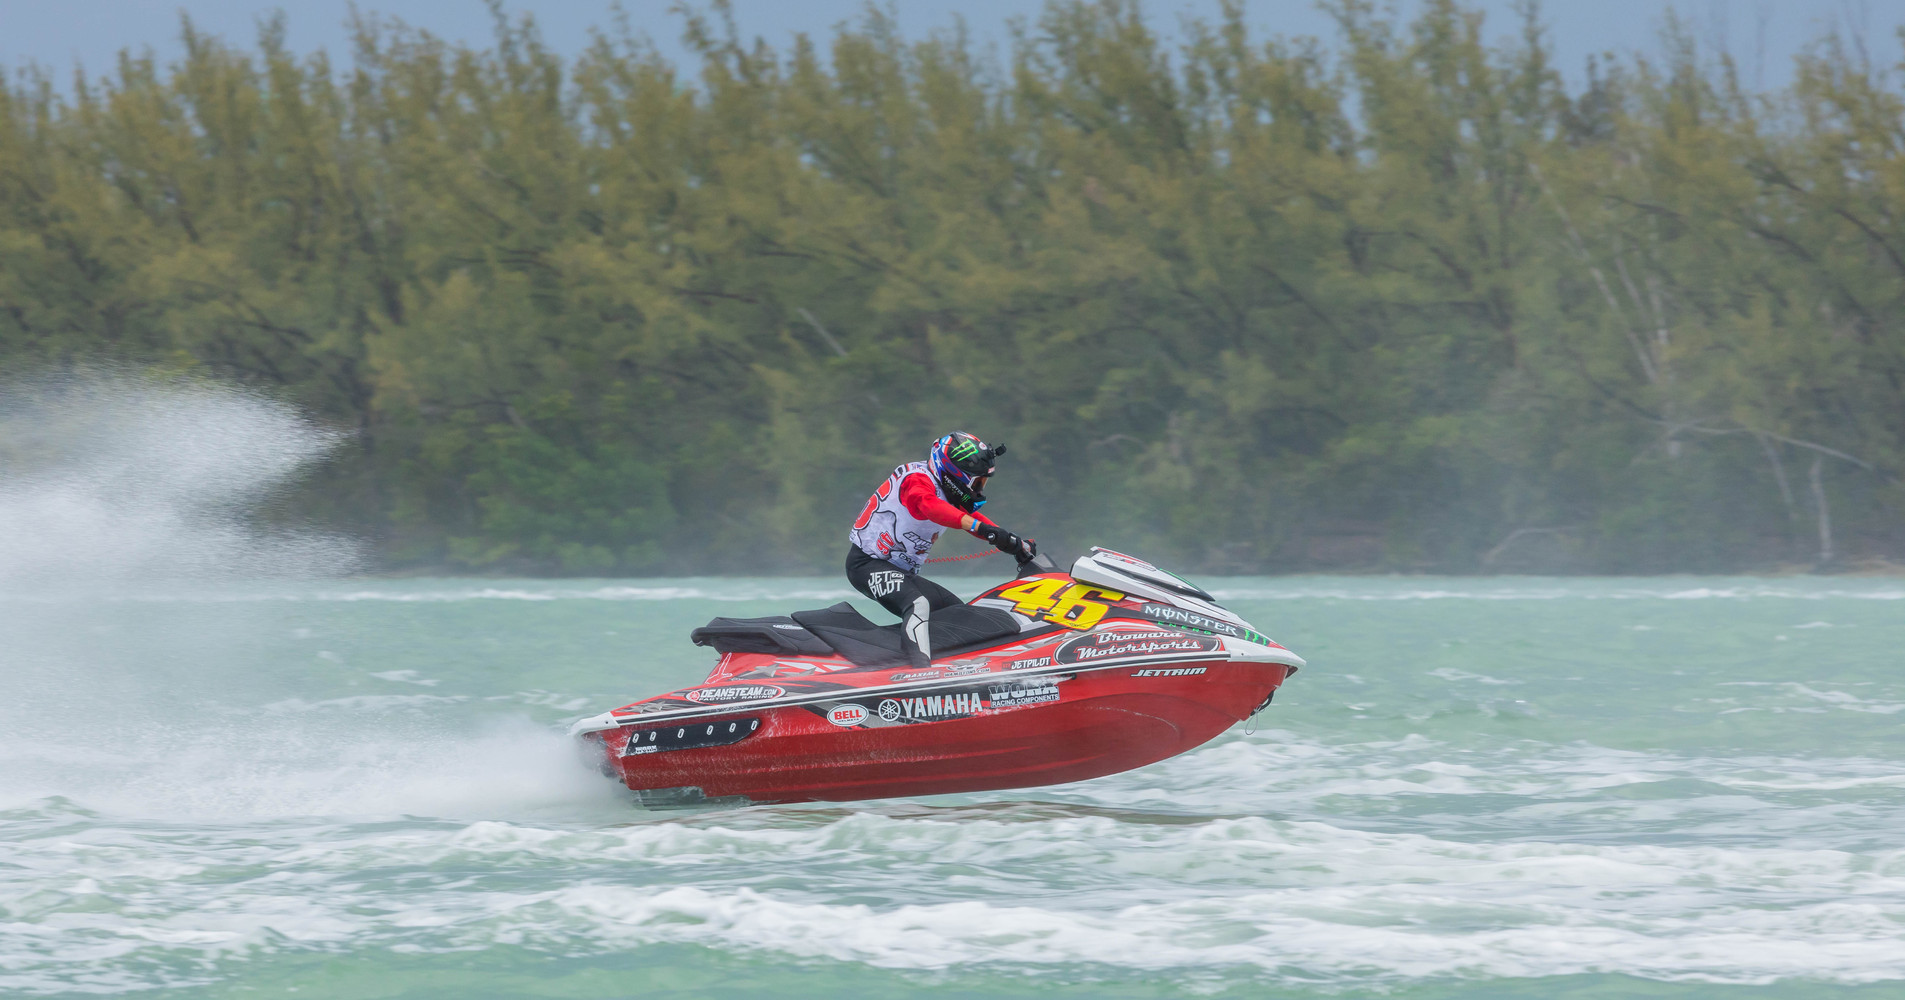 USA's Chris MacCluggage is the current #1 AquaX World Ranked Rider